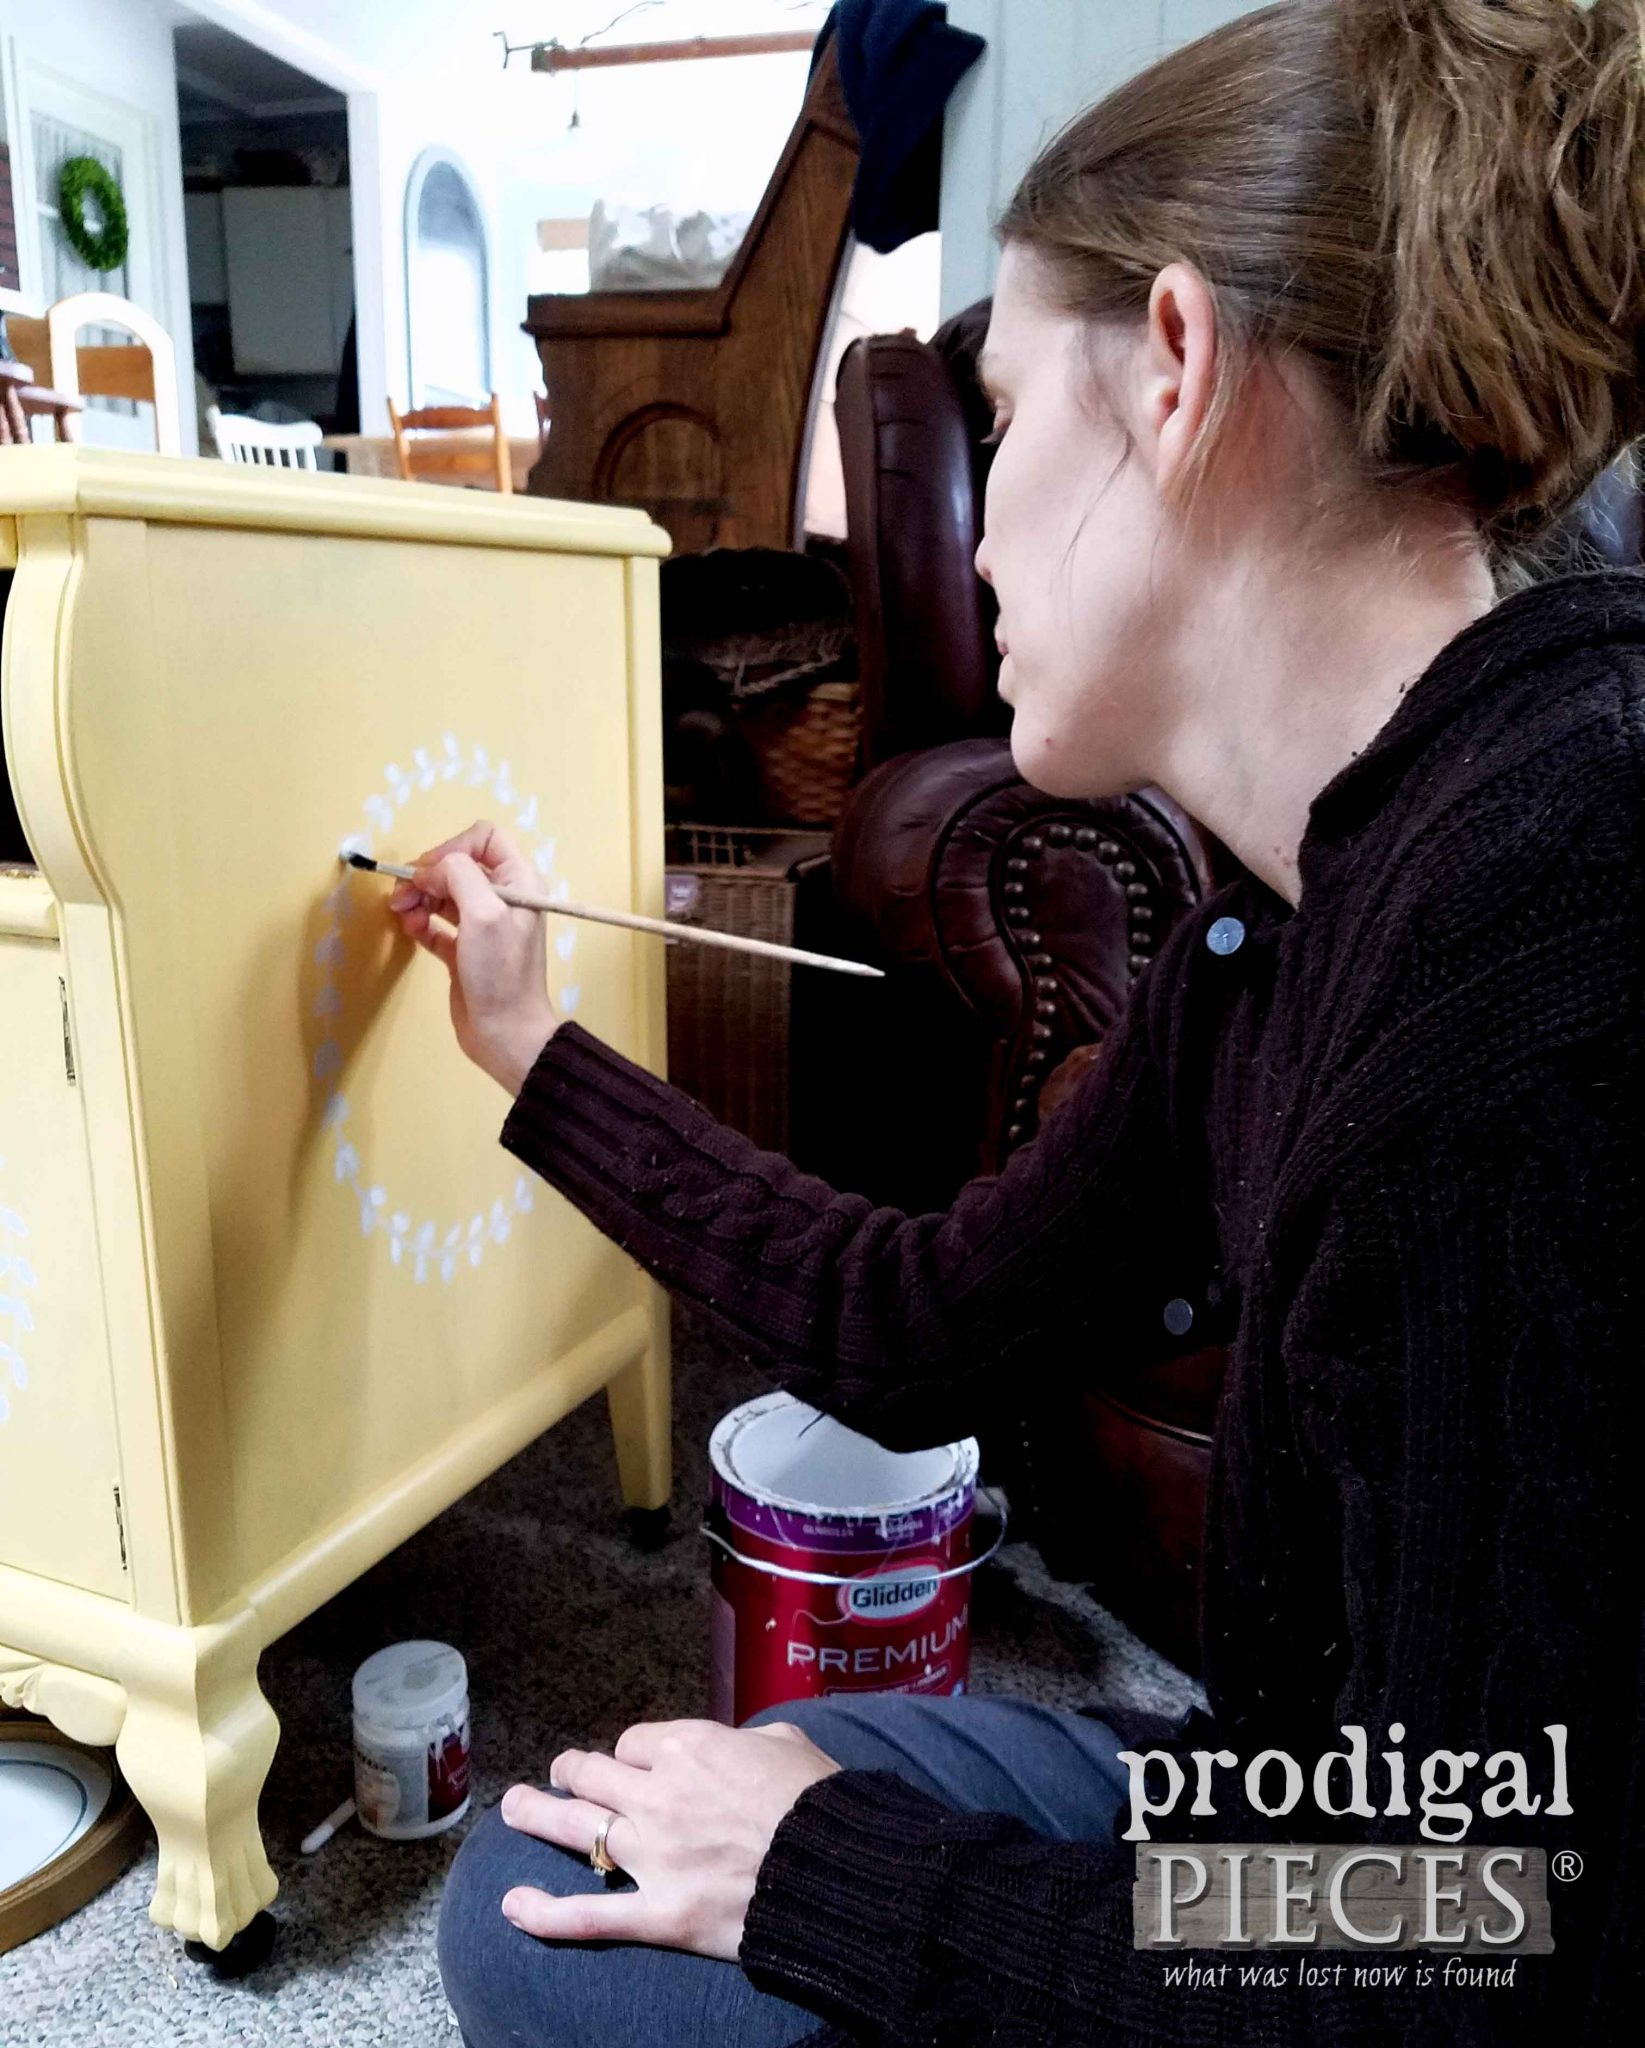 Larissa Haynes of Prodigal Pieces hand-painting | prodigalpieces.com